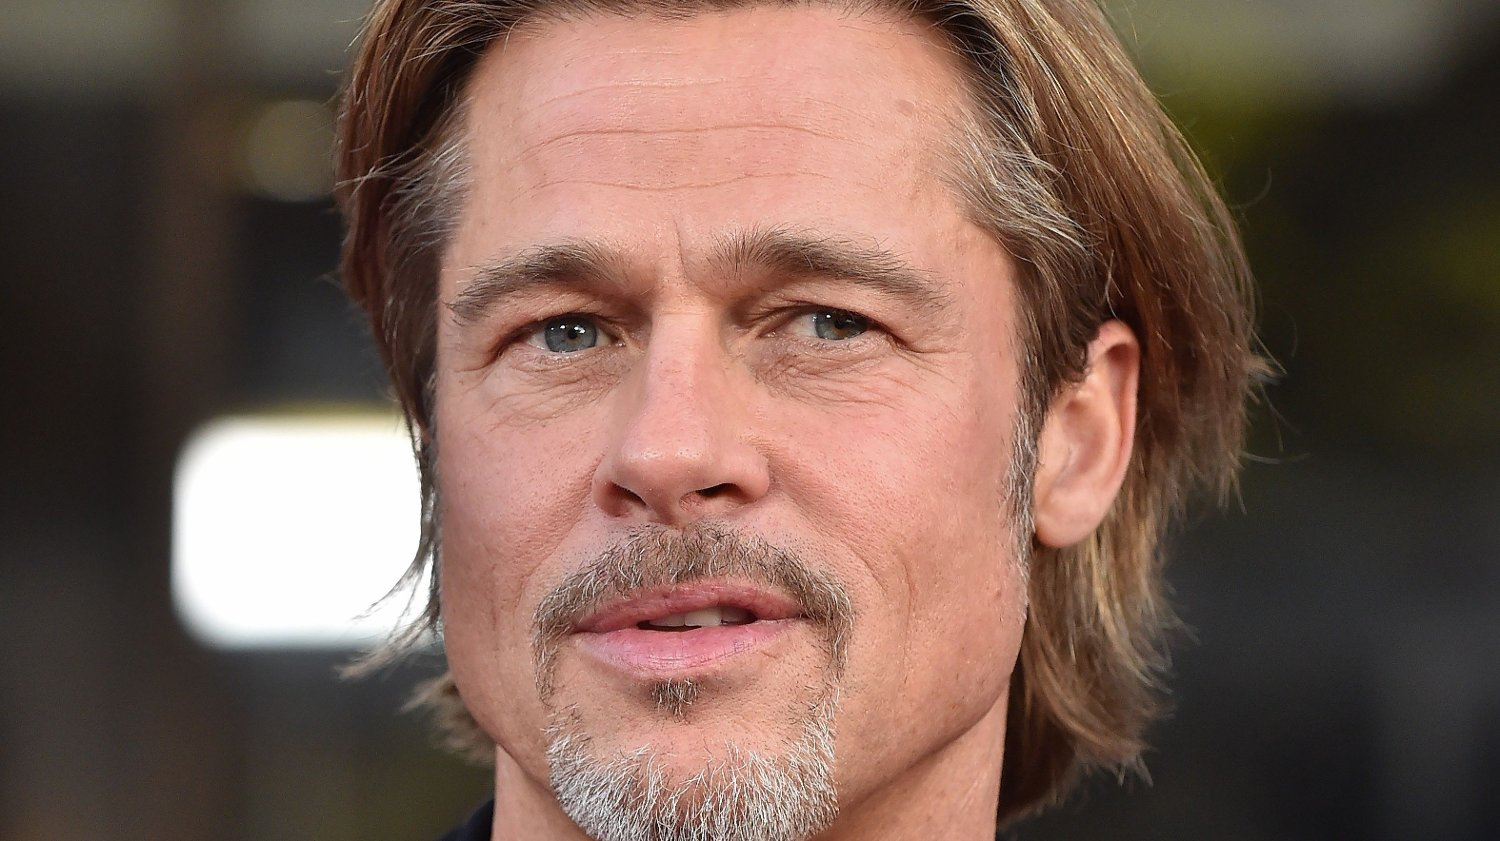 Ad Astra Special Screening - Los Angeles Ad Astra Special Screening - Los Angeles. Brad Pitt arriving to the 'Ad Astra' Special Screening at Cinerama Dome on September 18, 2019 in Hollywood, CA. © O'Connor/AFF-USA.com URN:45364774